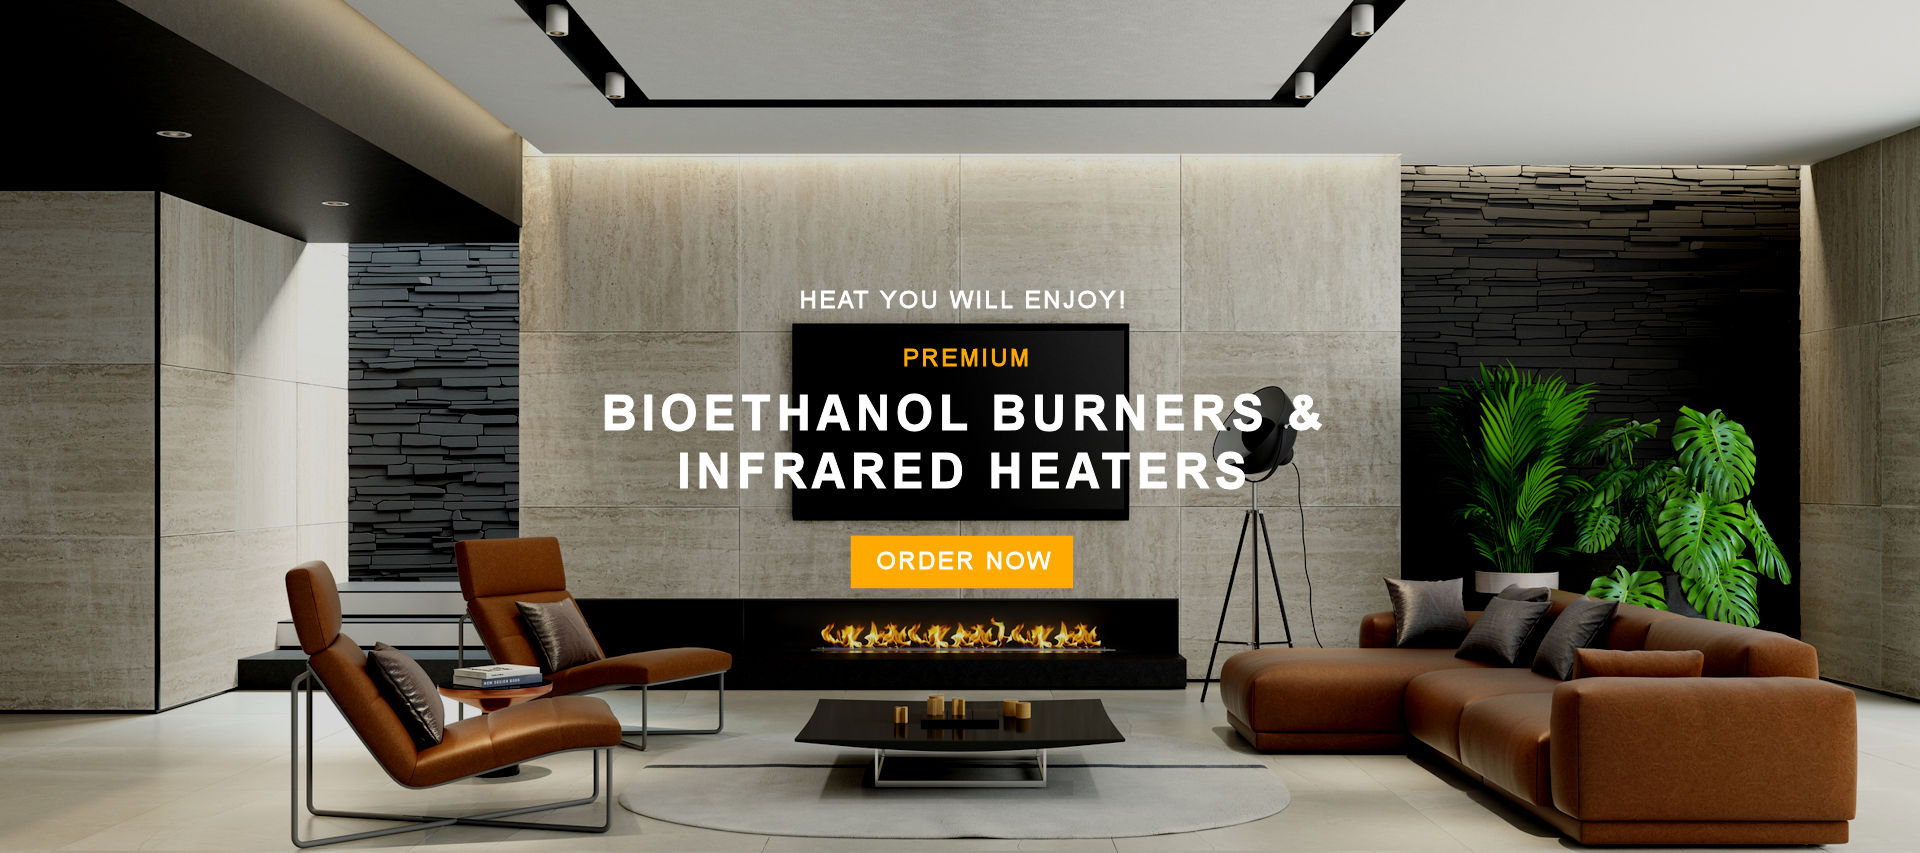 Premium Bioethanol Burners & Infrared Heaters